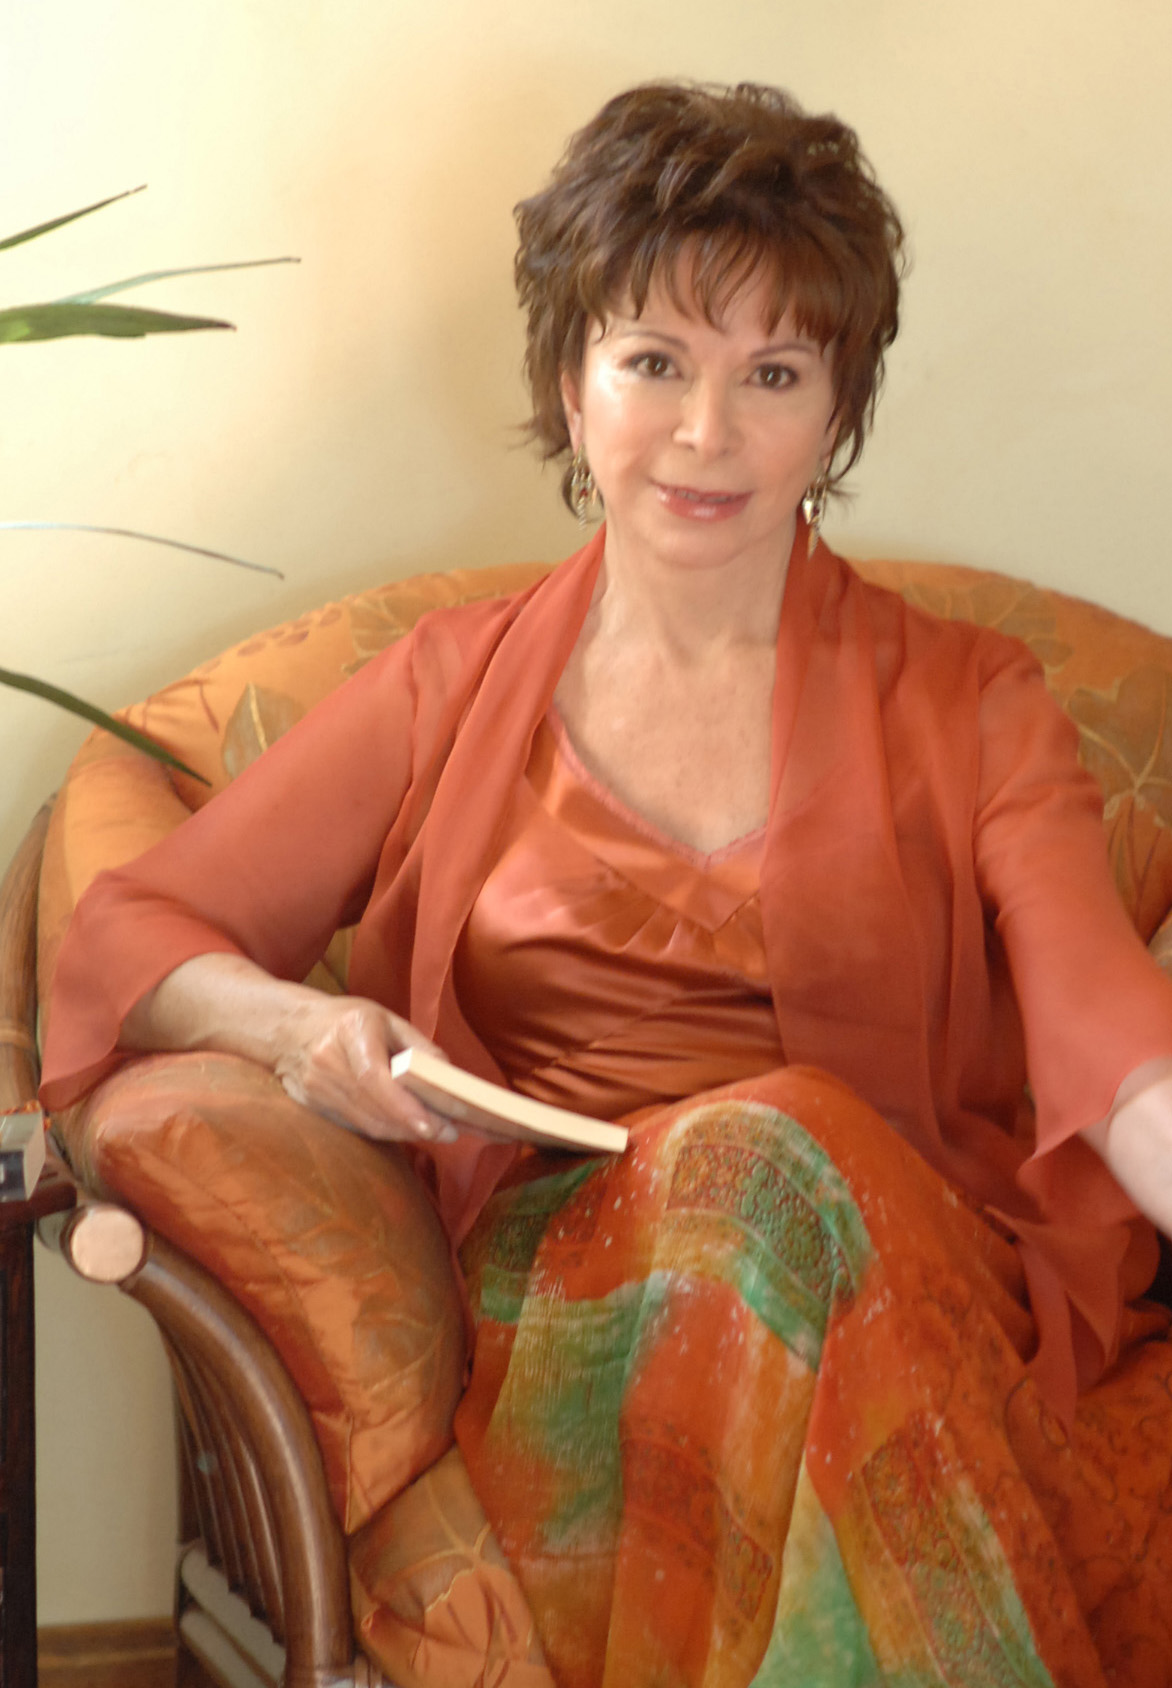 Novelist Isabel Allende will present the 2009 Tanner Lecture on Human Values on Dec. 2 at 7 p.m. in the Olpin Union Ballroom.